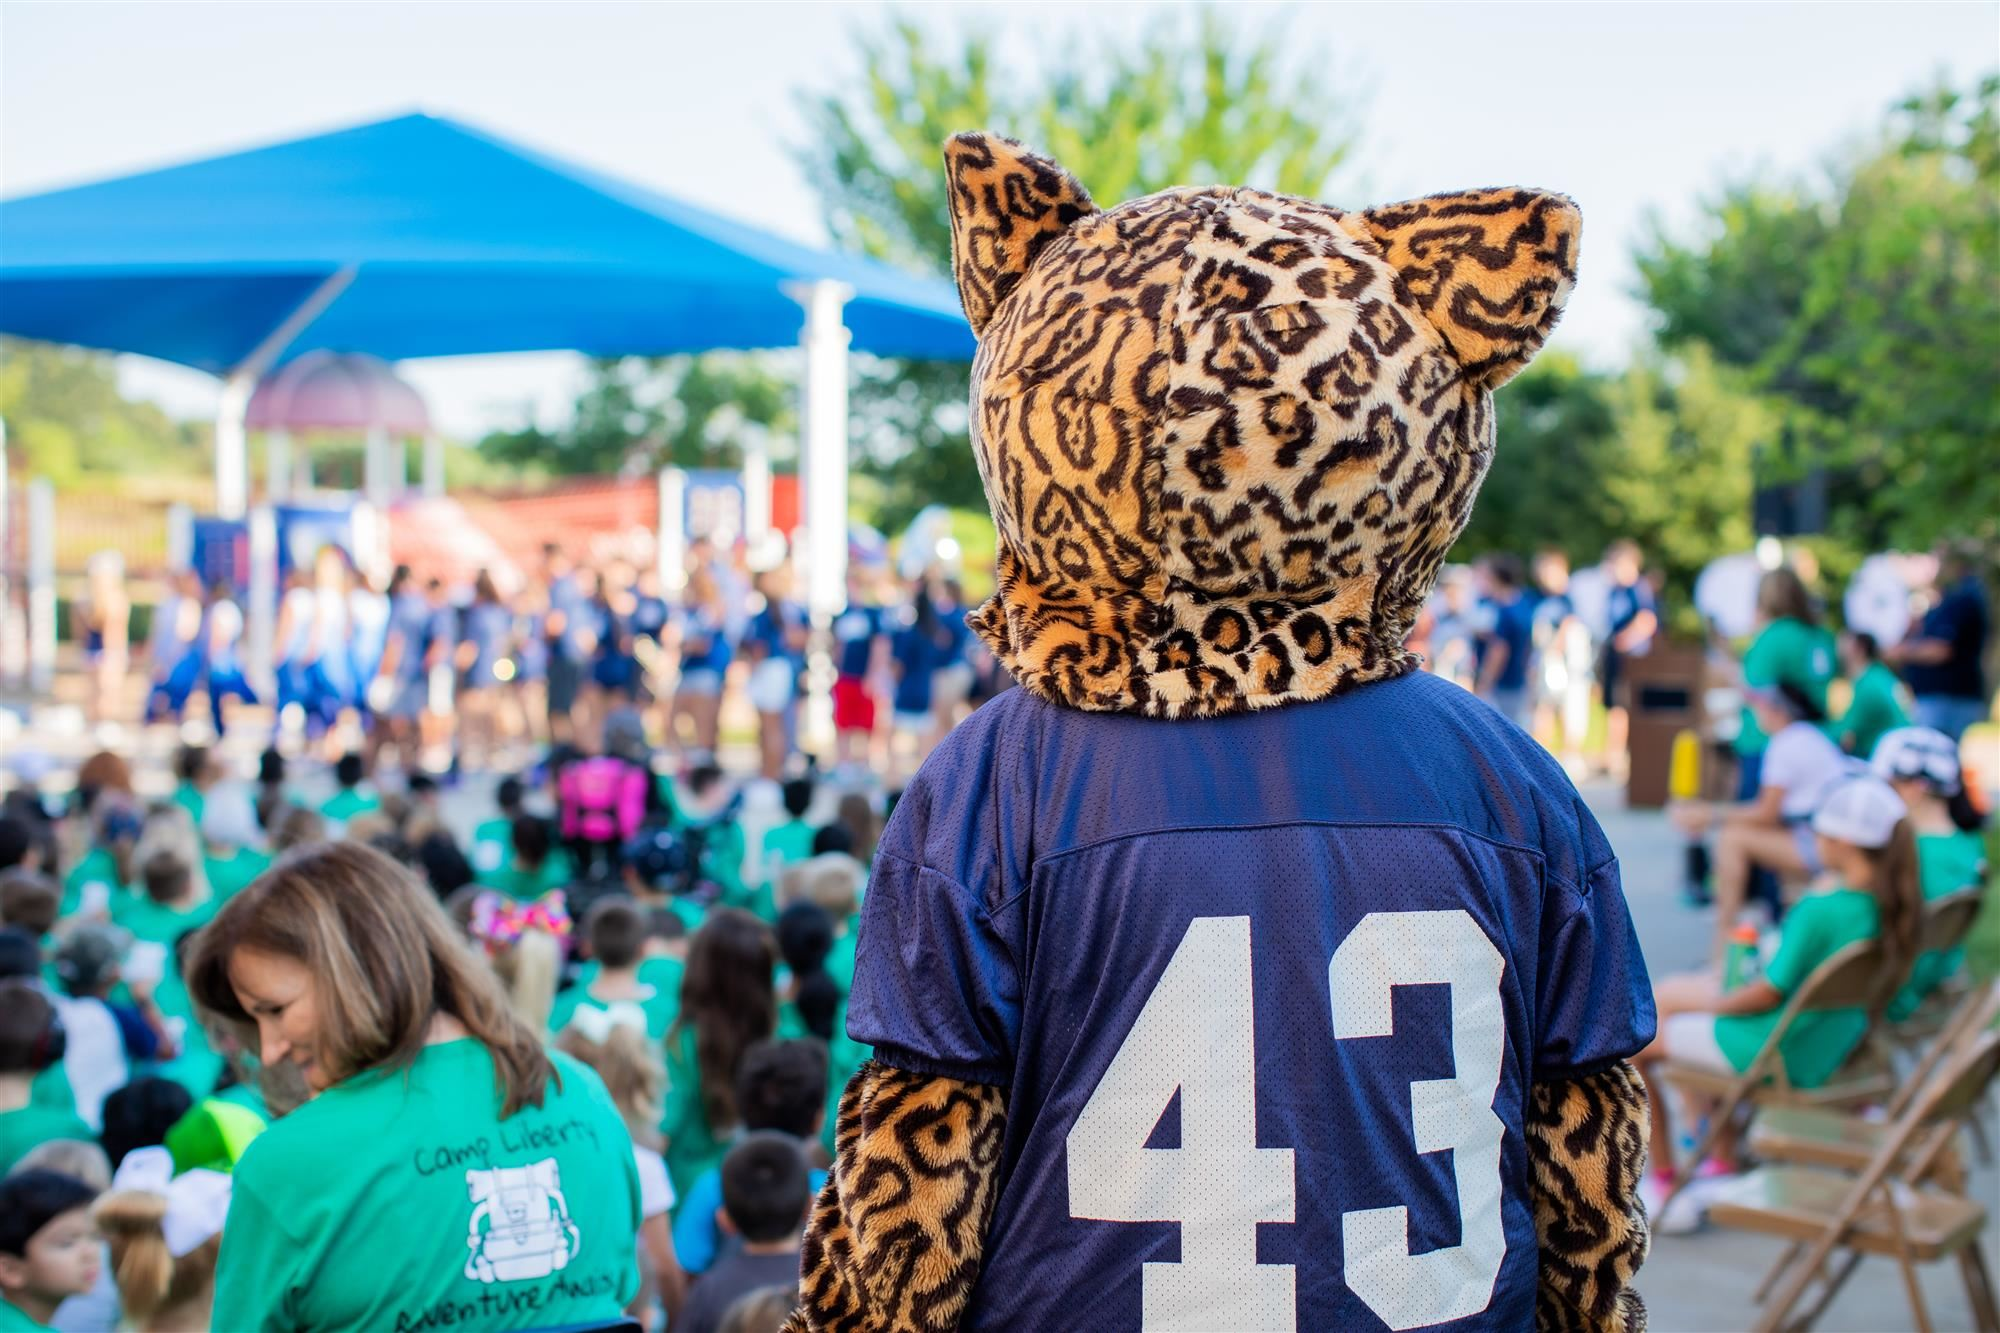 2019 liberty elementary school spirit assembly with fmhs mascot looking at crowd.